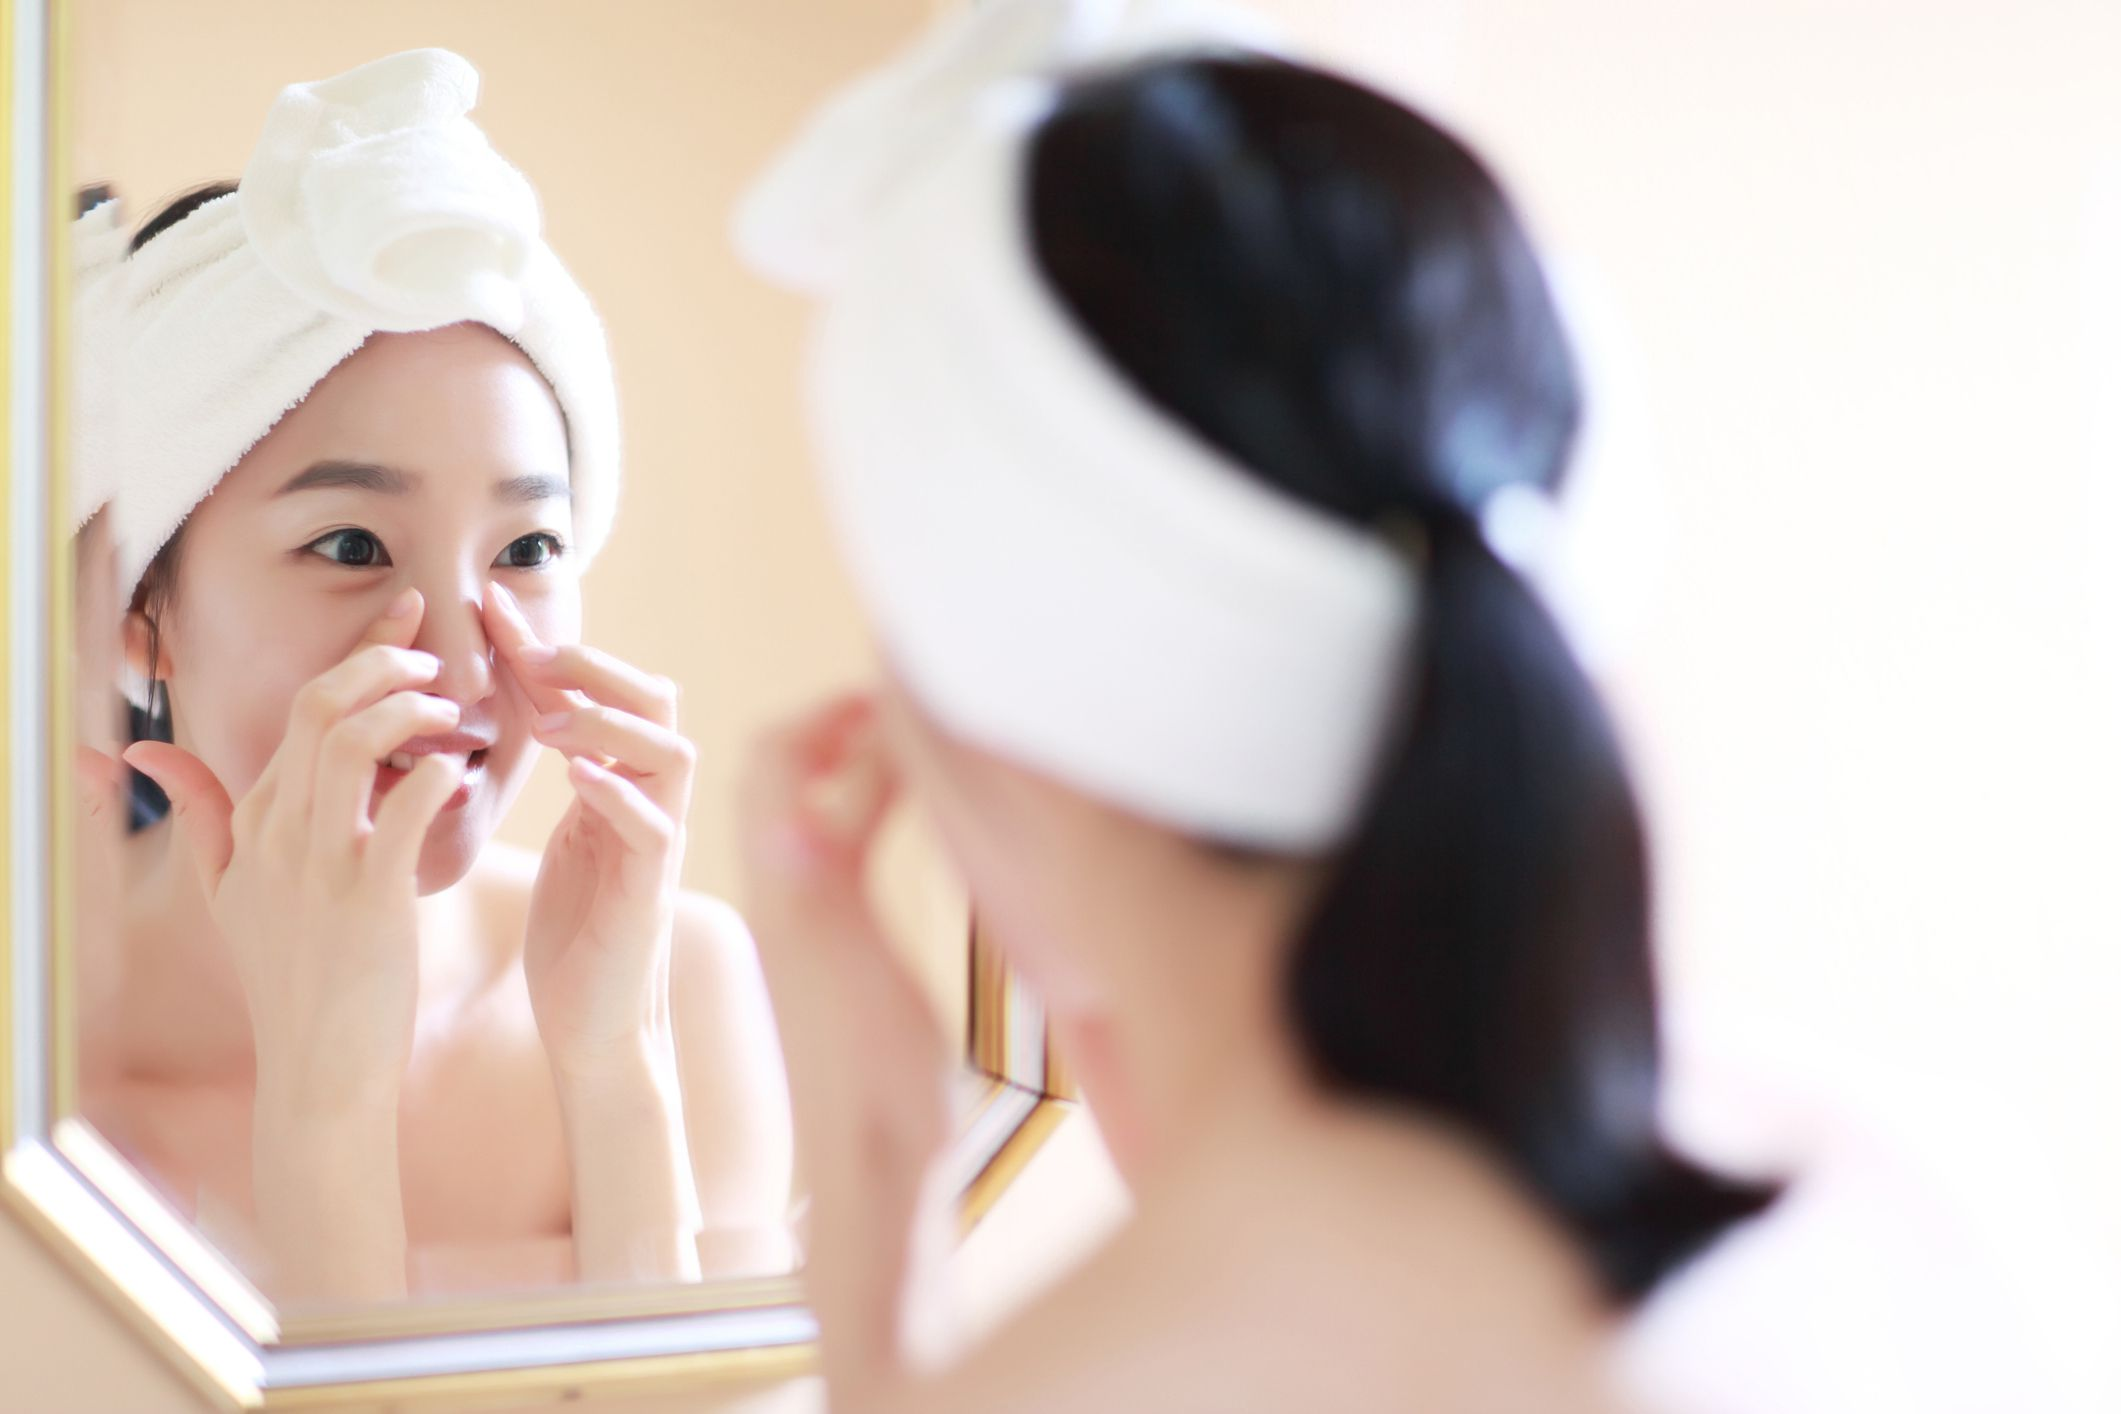 Ask a Dermatologist: How Do I Treat Adult Acne?